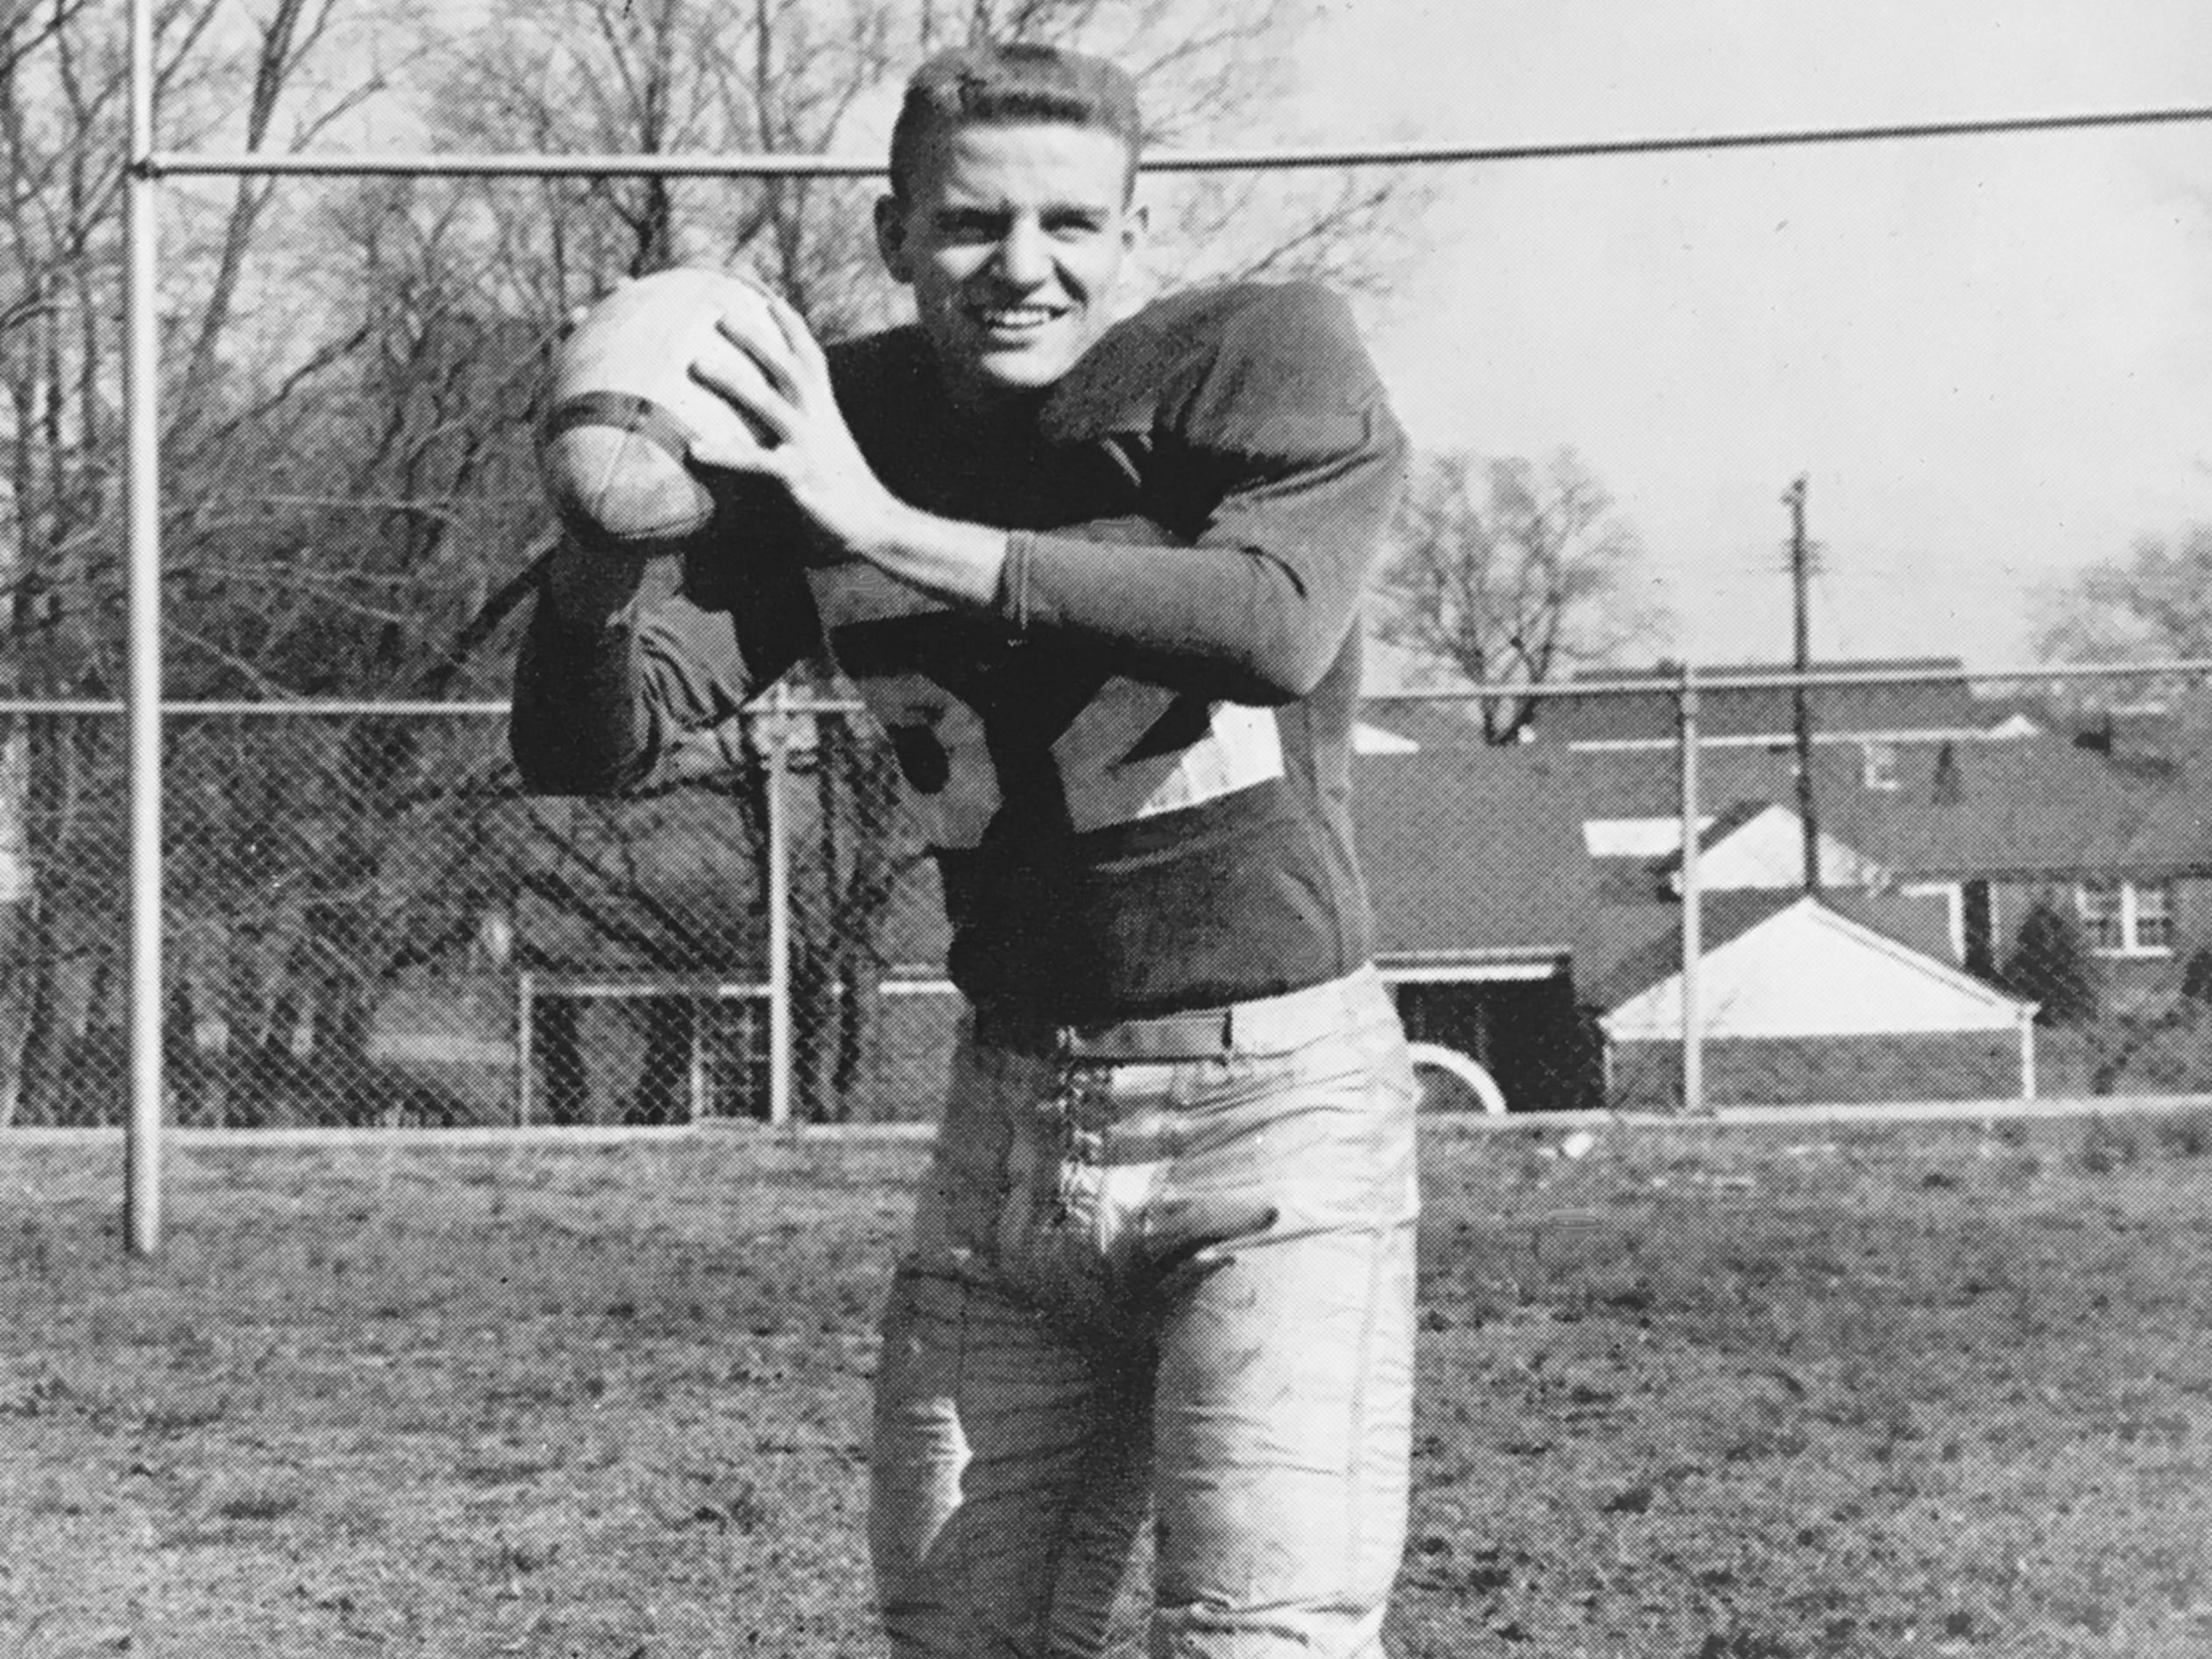 George Volkert, Litton RB/P/PK 1950-52